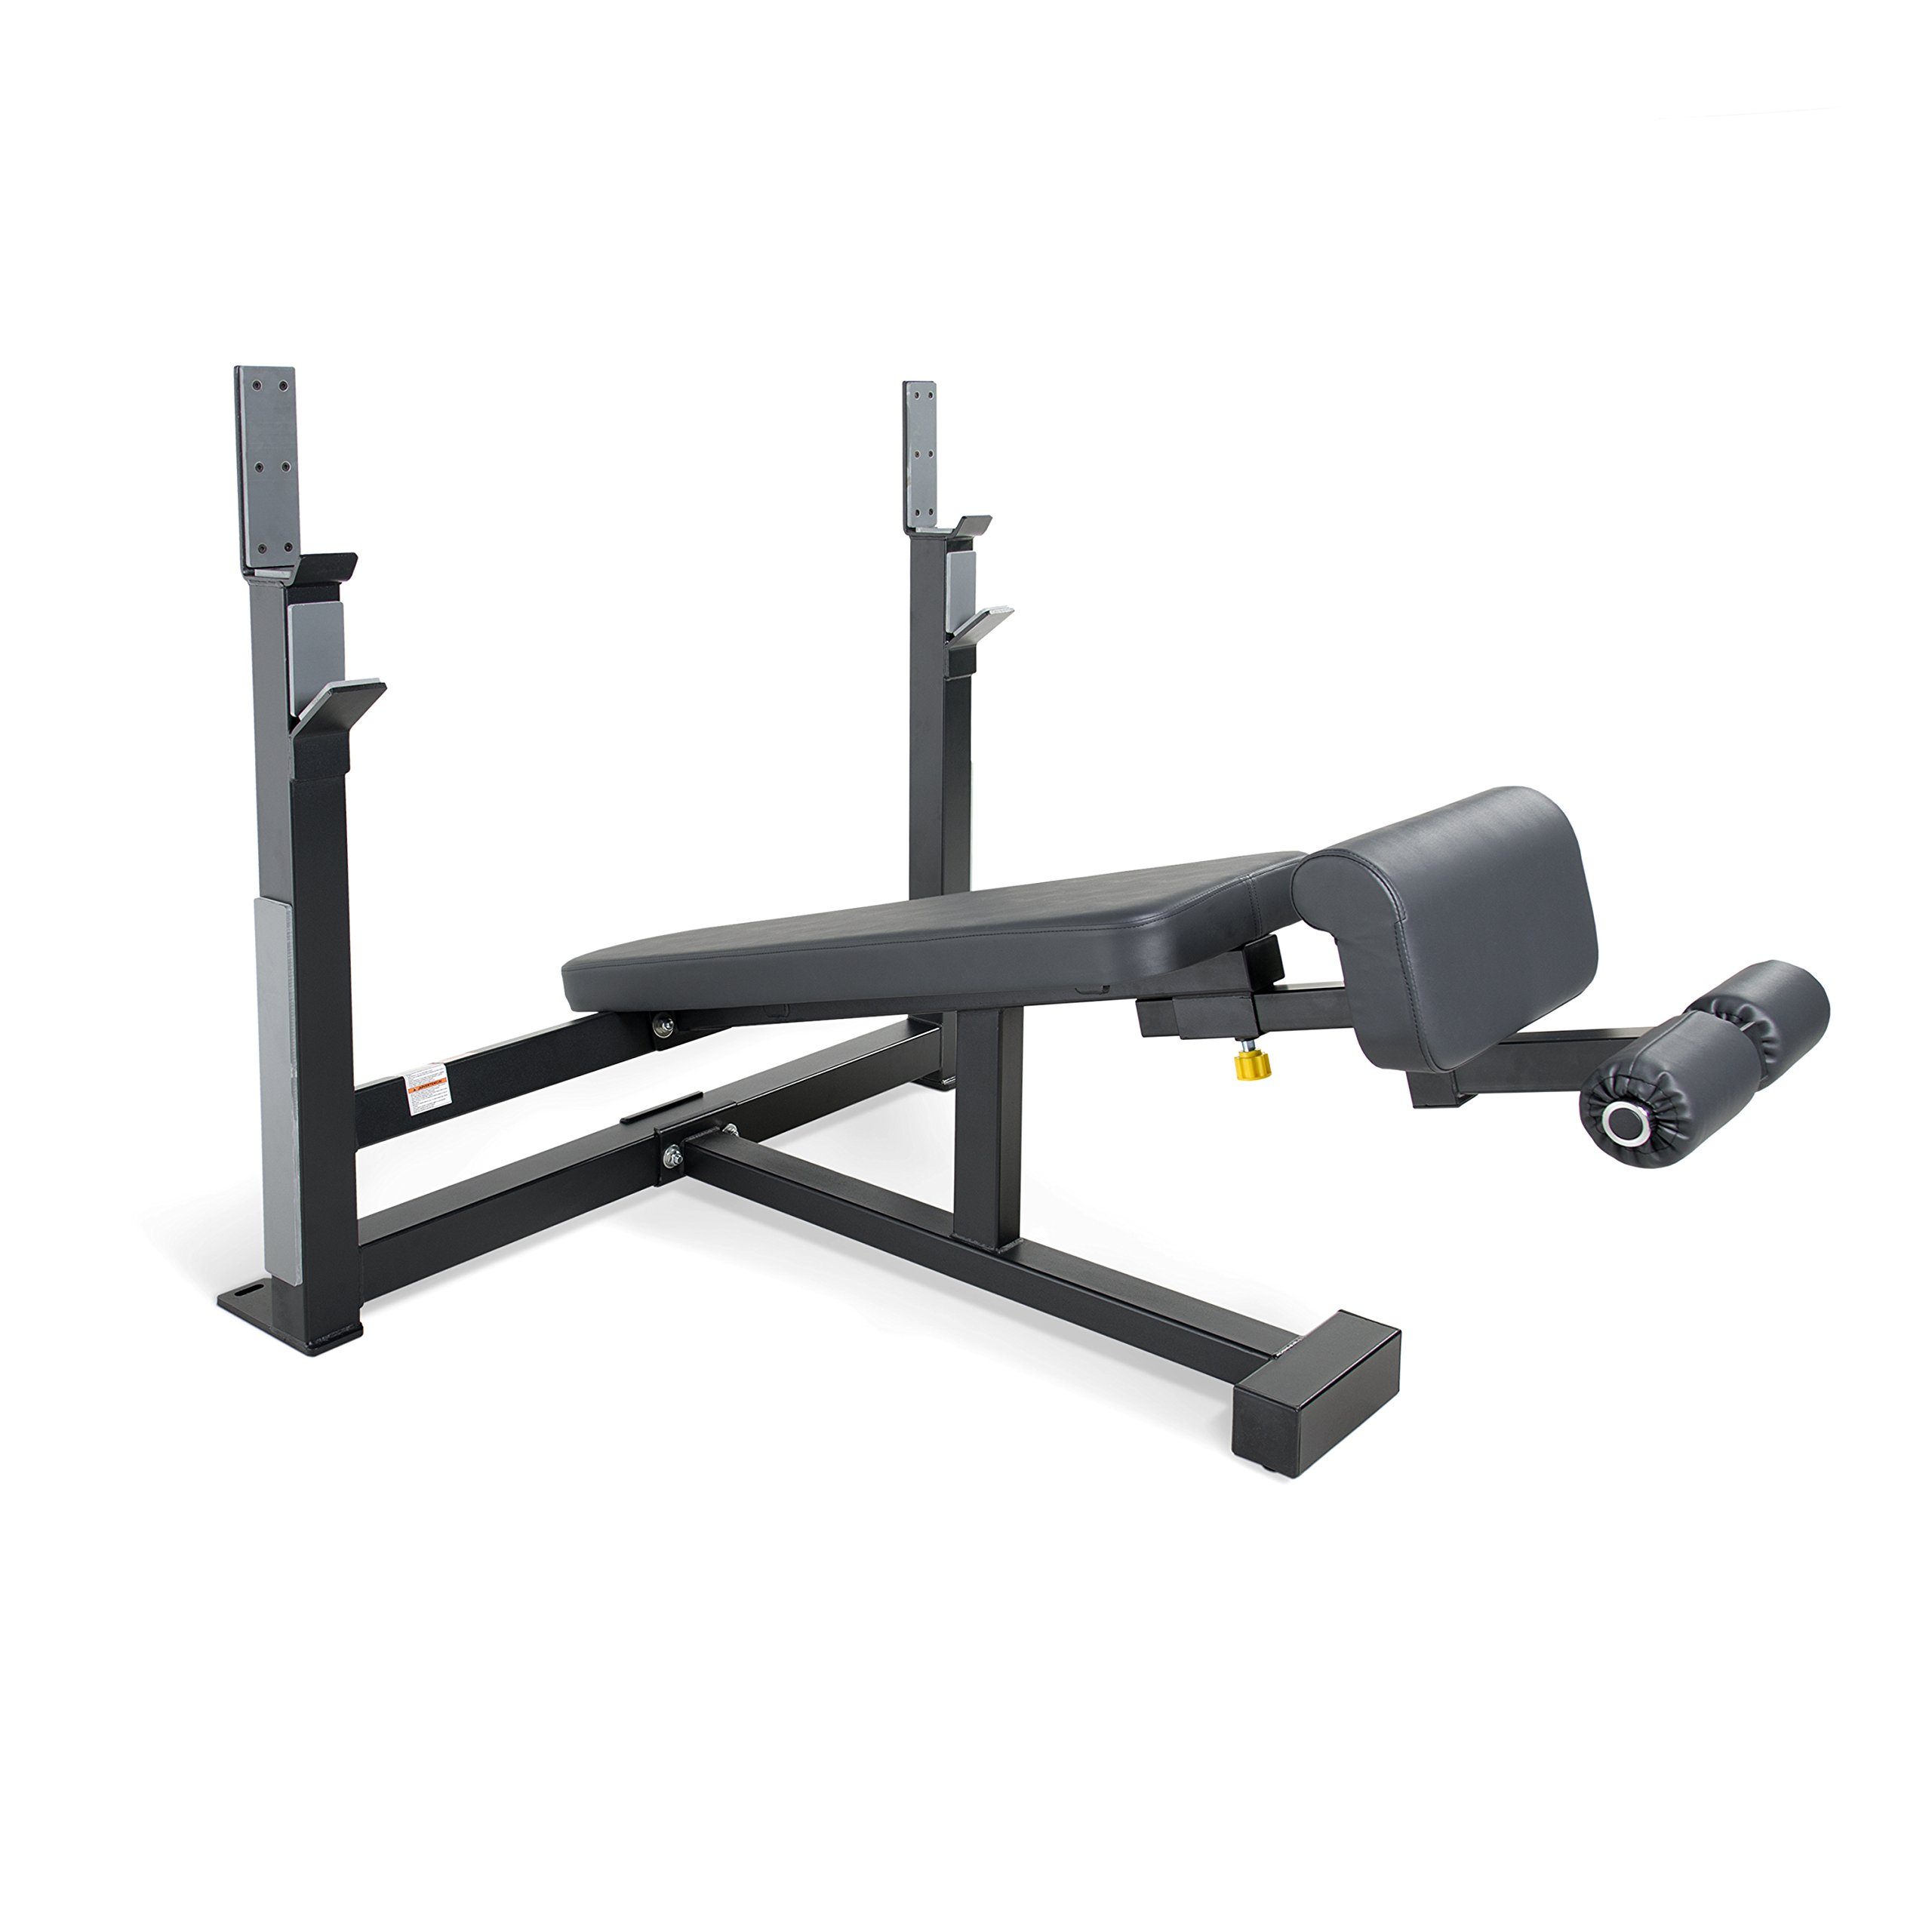 WF Athletic Supply Olympic Decline Bench with Adjustable Ankle Roller - Heavy Duty Frame with 3-inch Square 11 Gauge Steel - Best Decline Bench for Gyms, Schools & Home